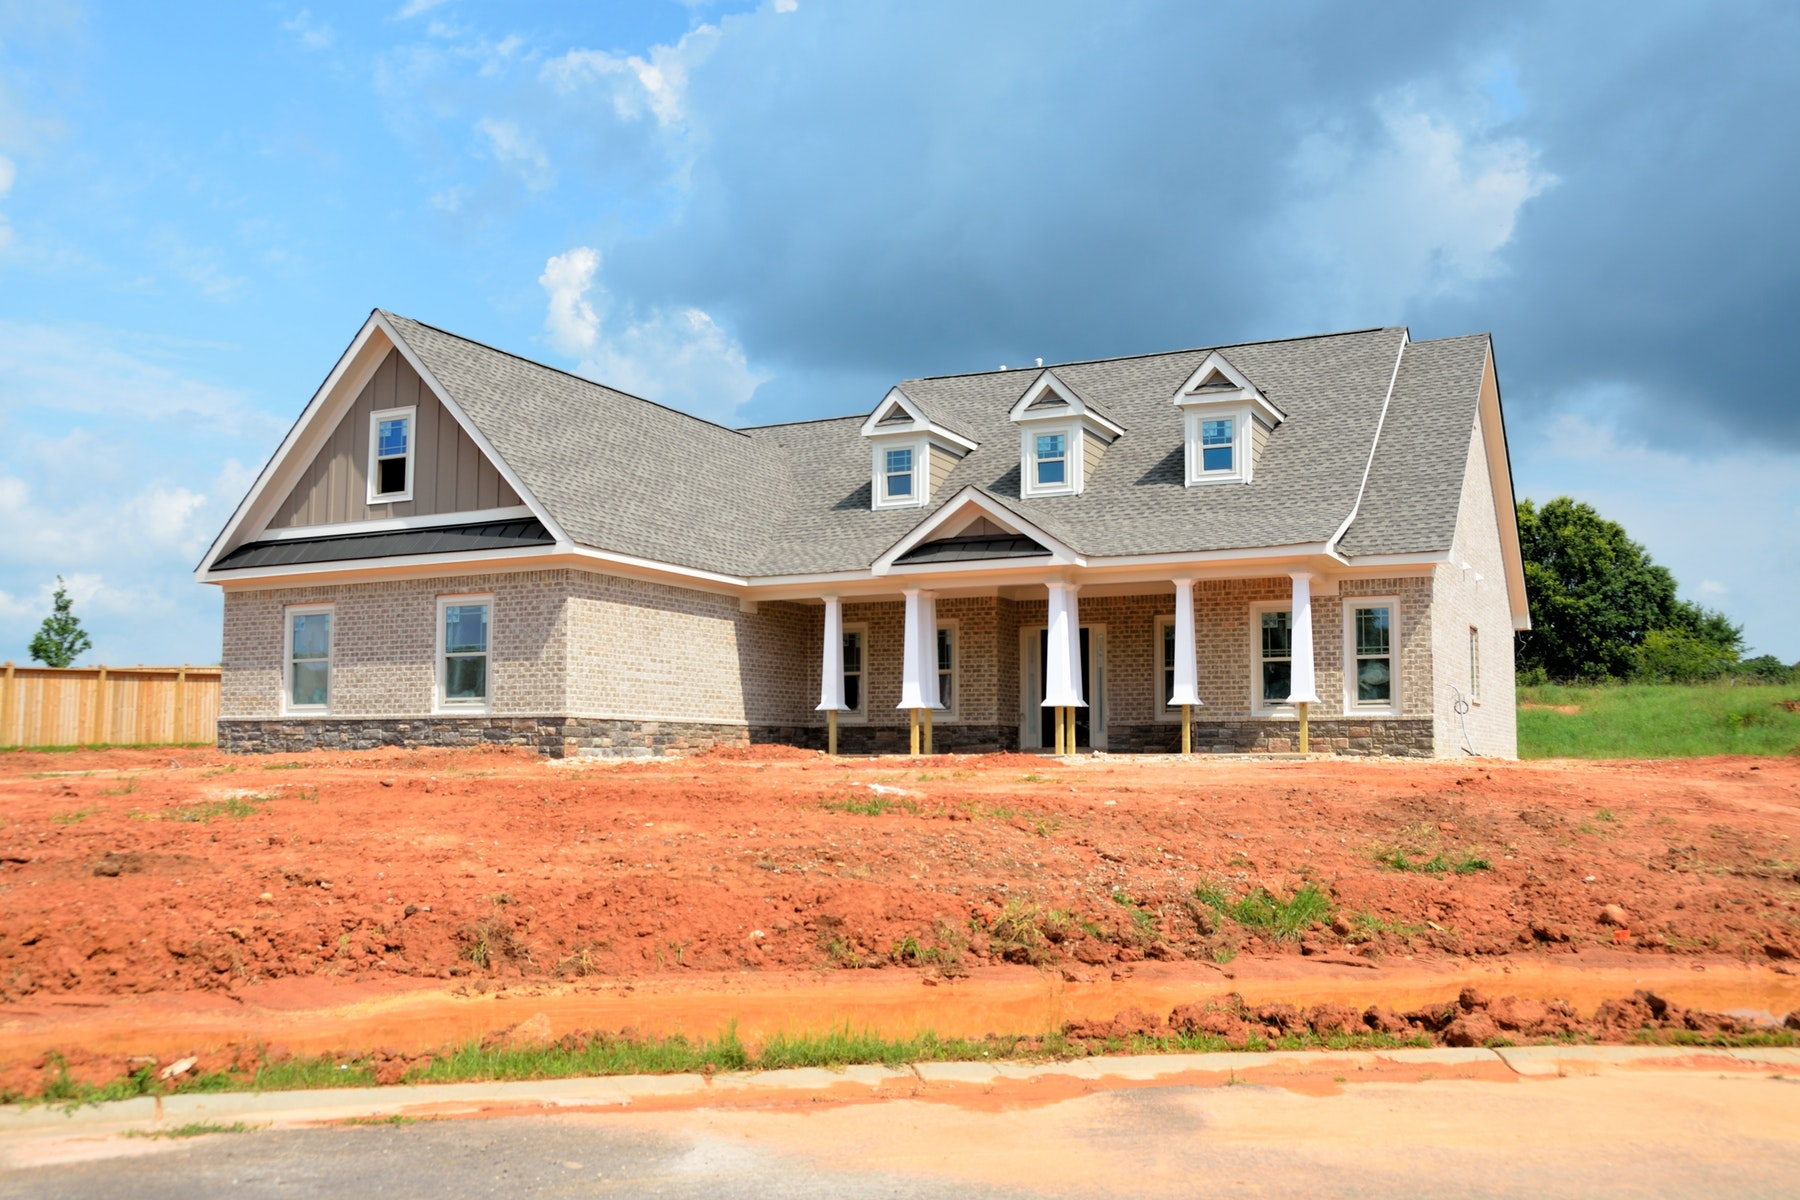 Homebuilders Healing as Buyers Swell and Stocks Rally